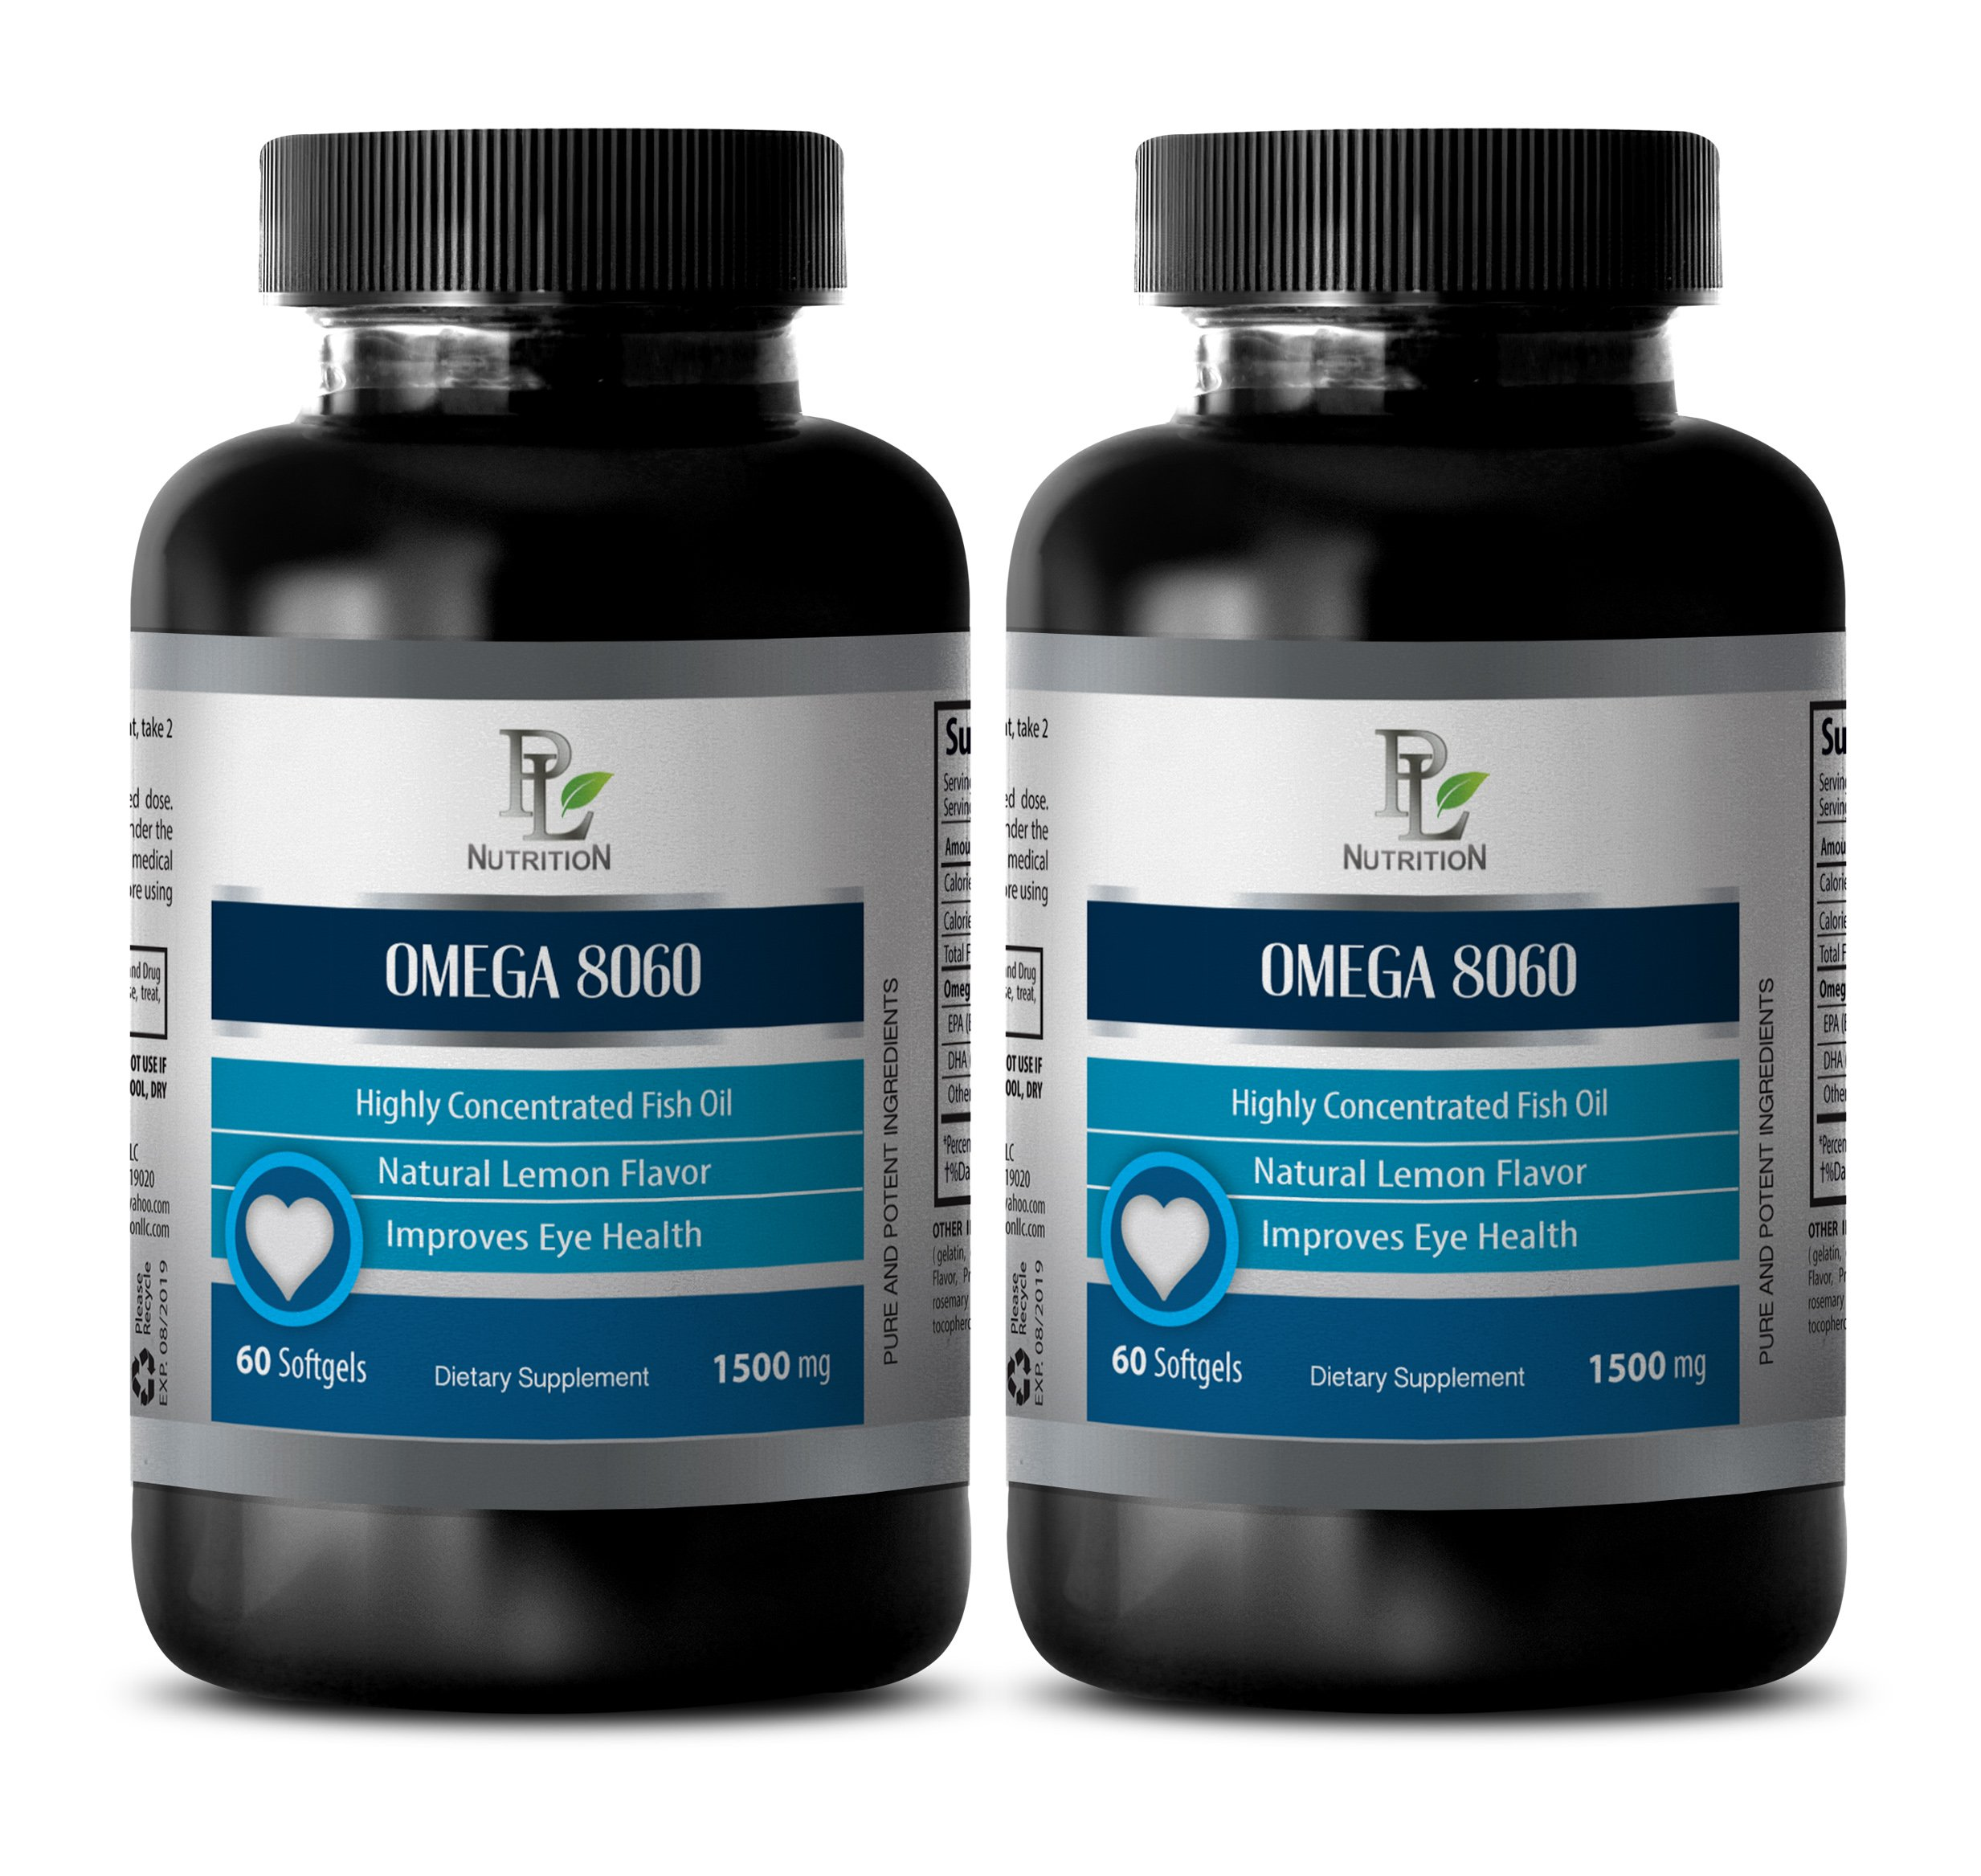 Eye supplement - OMEGA 8060 HIGHLY CONCENTRATED FISH OIL - Omega 3 with dha - 2 Bottle 120 Softgels